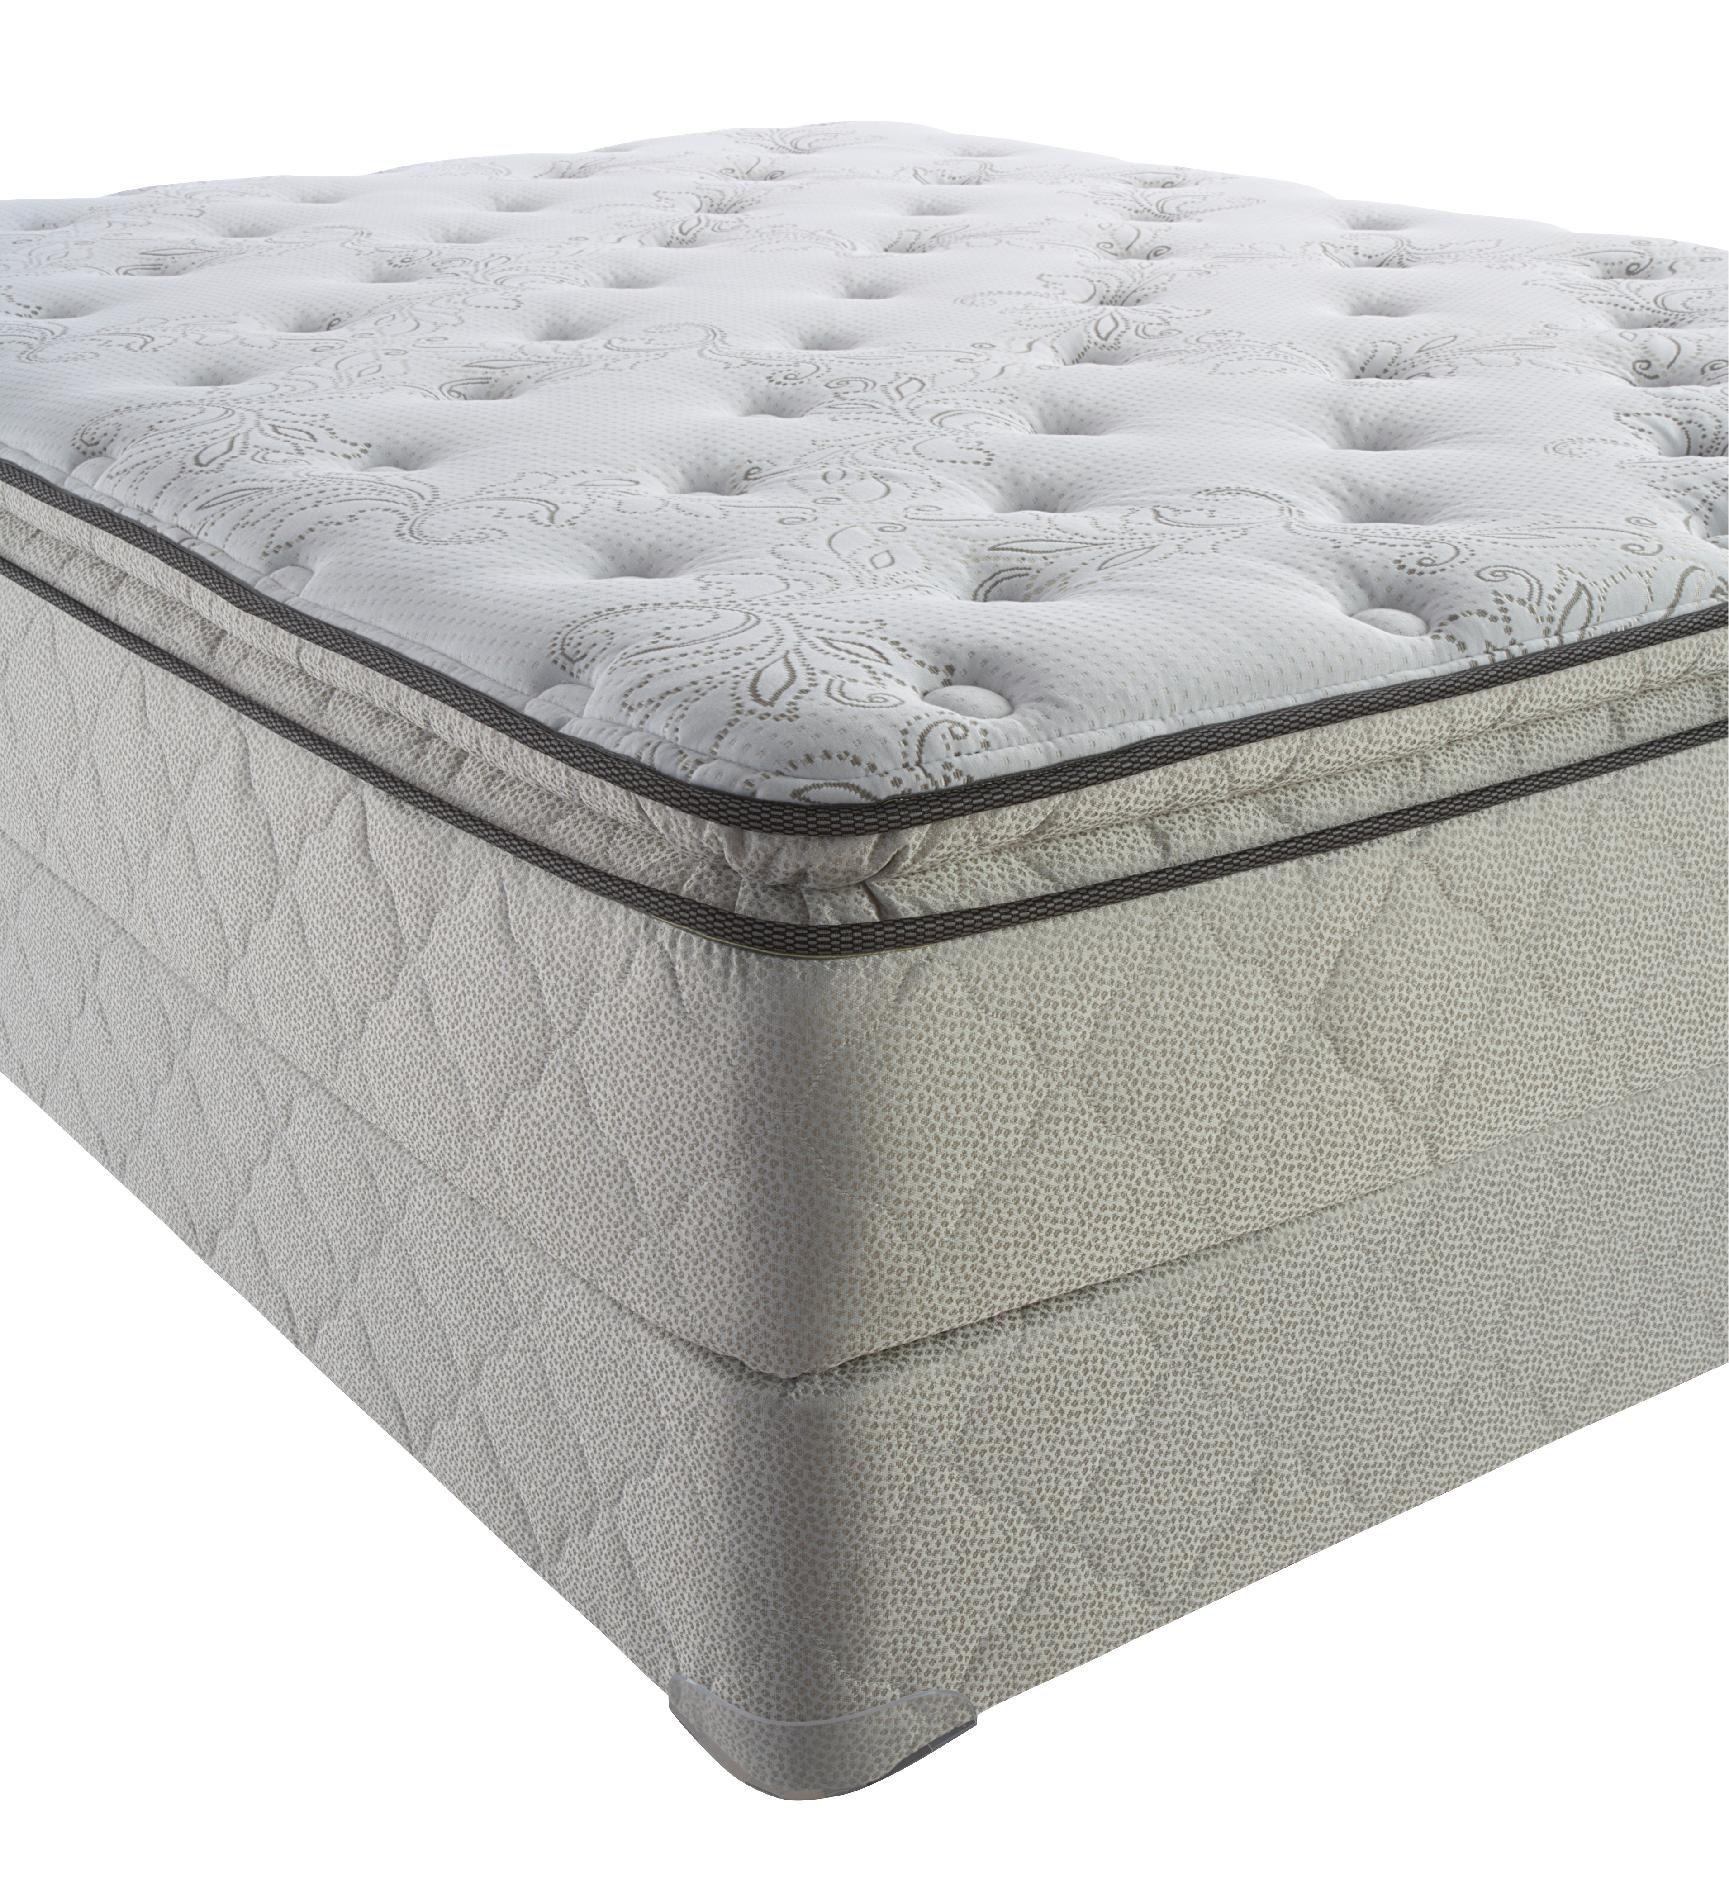 Patrician-Select-II-Plush-Euro-Pillowtop-Queen-Mattress-Only